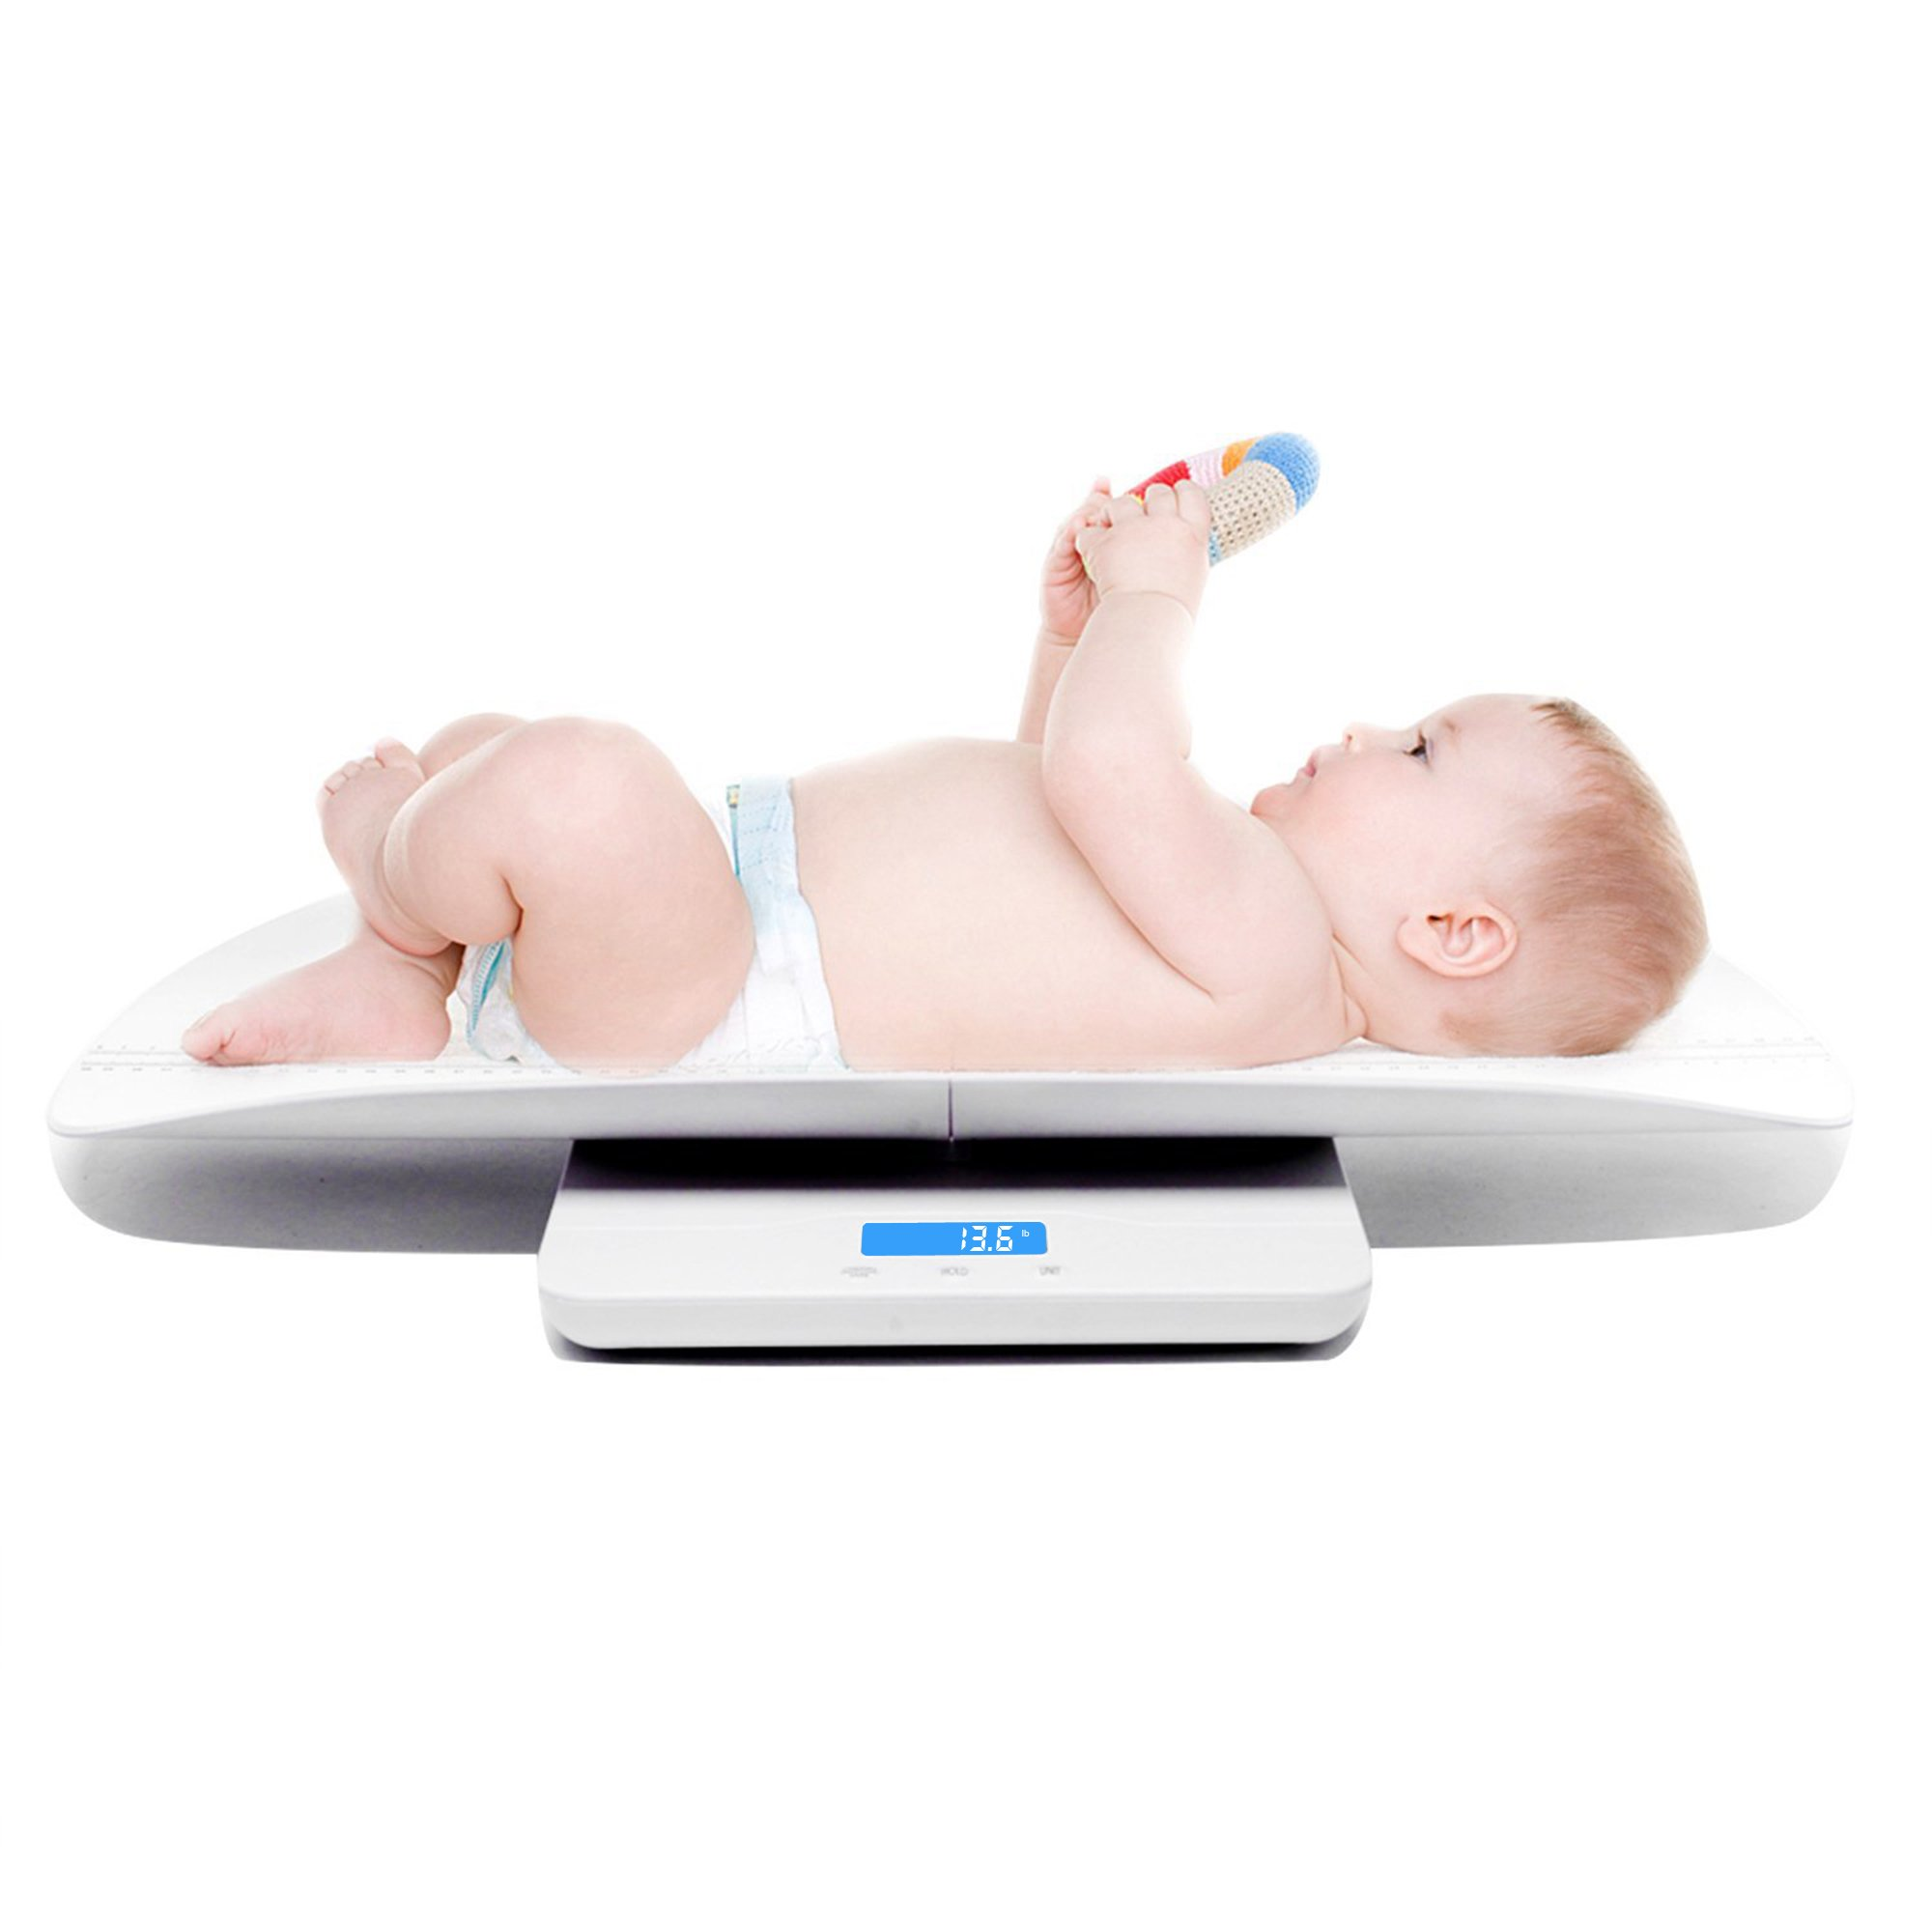 iSnow-Med Multi-Function Digital Baby Scale Measure Infant/Baby/Adult Weight Accurately, 220 Pound (lbs) Capacity with Precision of 10g, Blue Backlight, KG/OZ/LB, Length 60 cm (White)